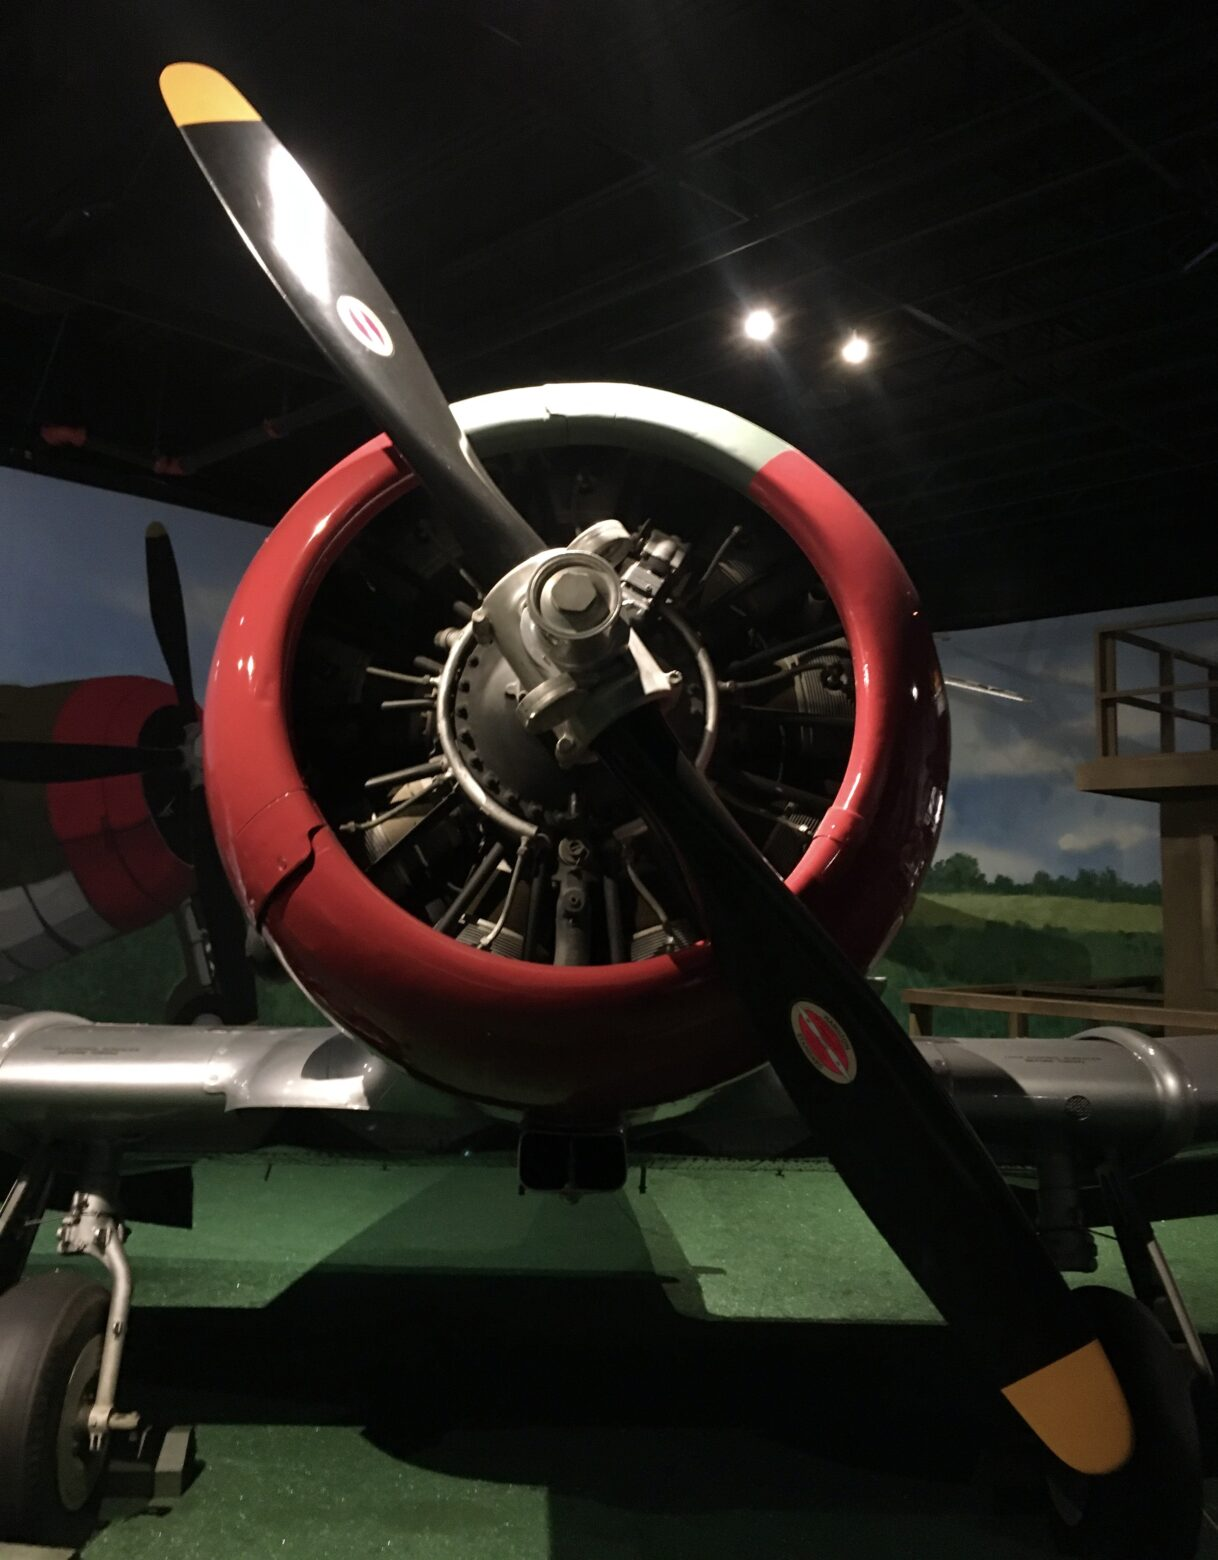 Museum of Aviation – Military Vehicles, Transport Equipment, and the Luftwaffe – Warner Robins Air Force Base – Warner Robins, Georgia – 05/04/2021